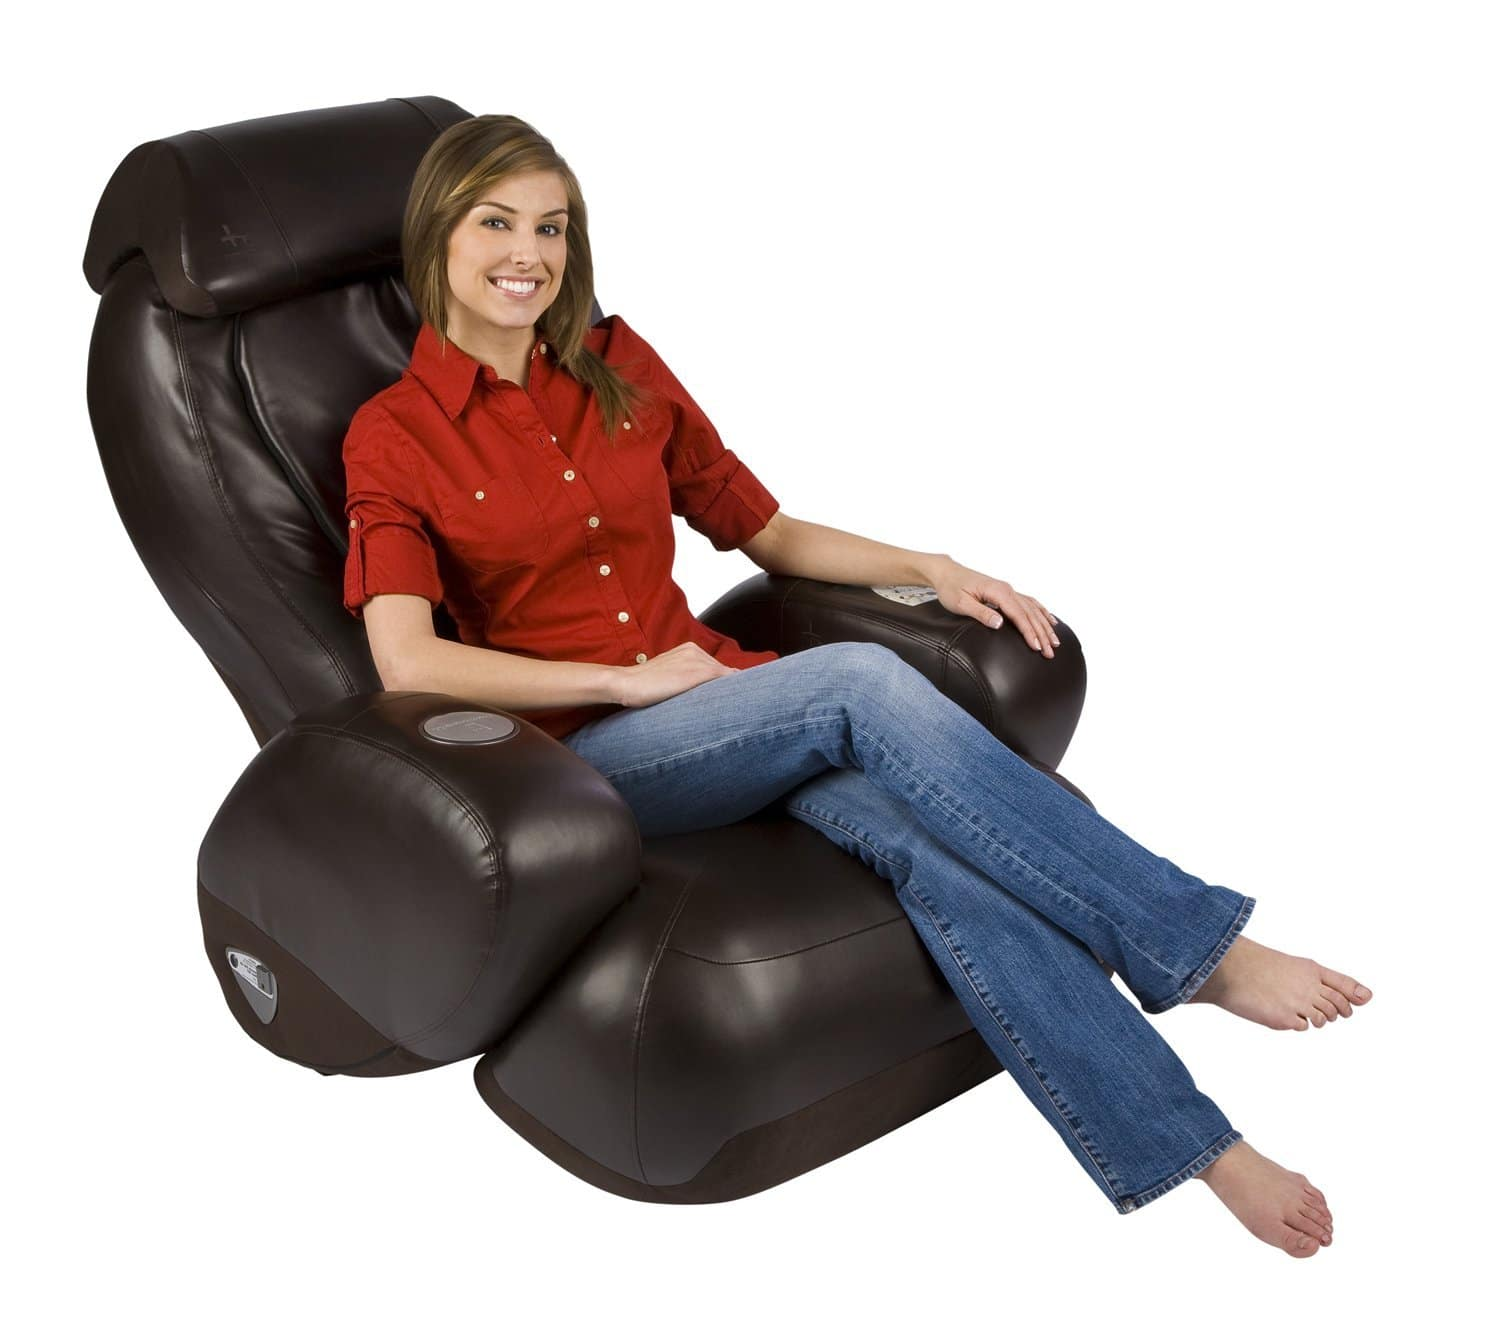 iJoy-2580 Massage Chair Store